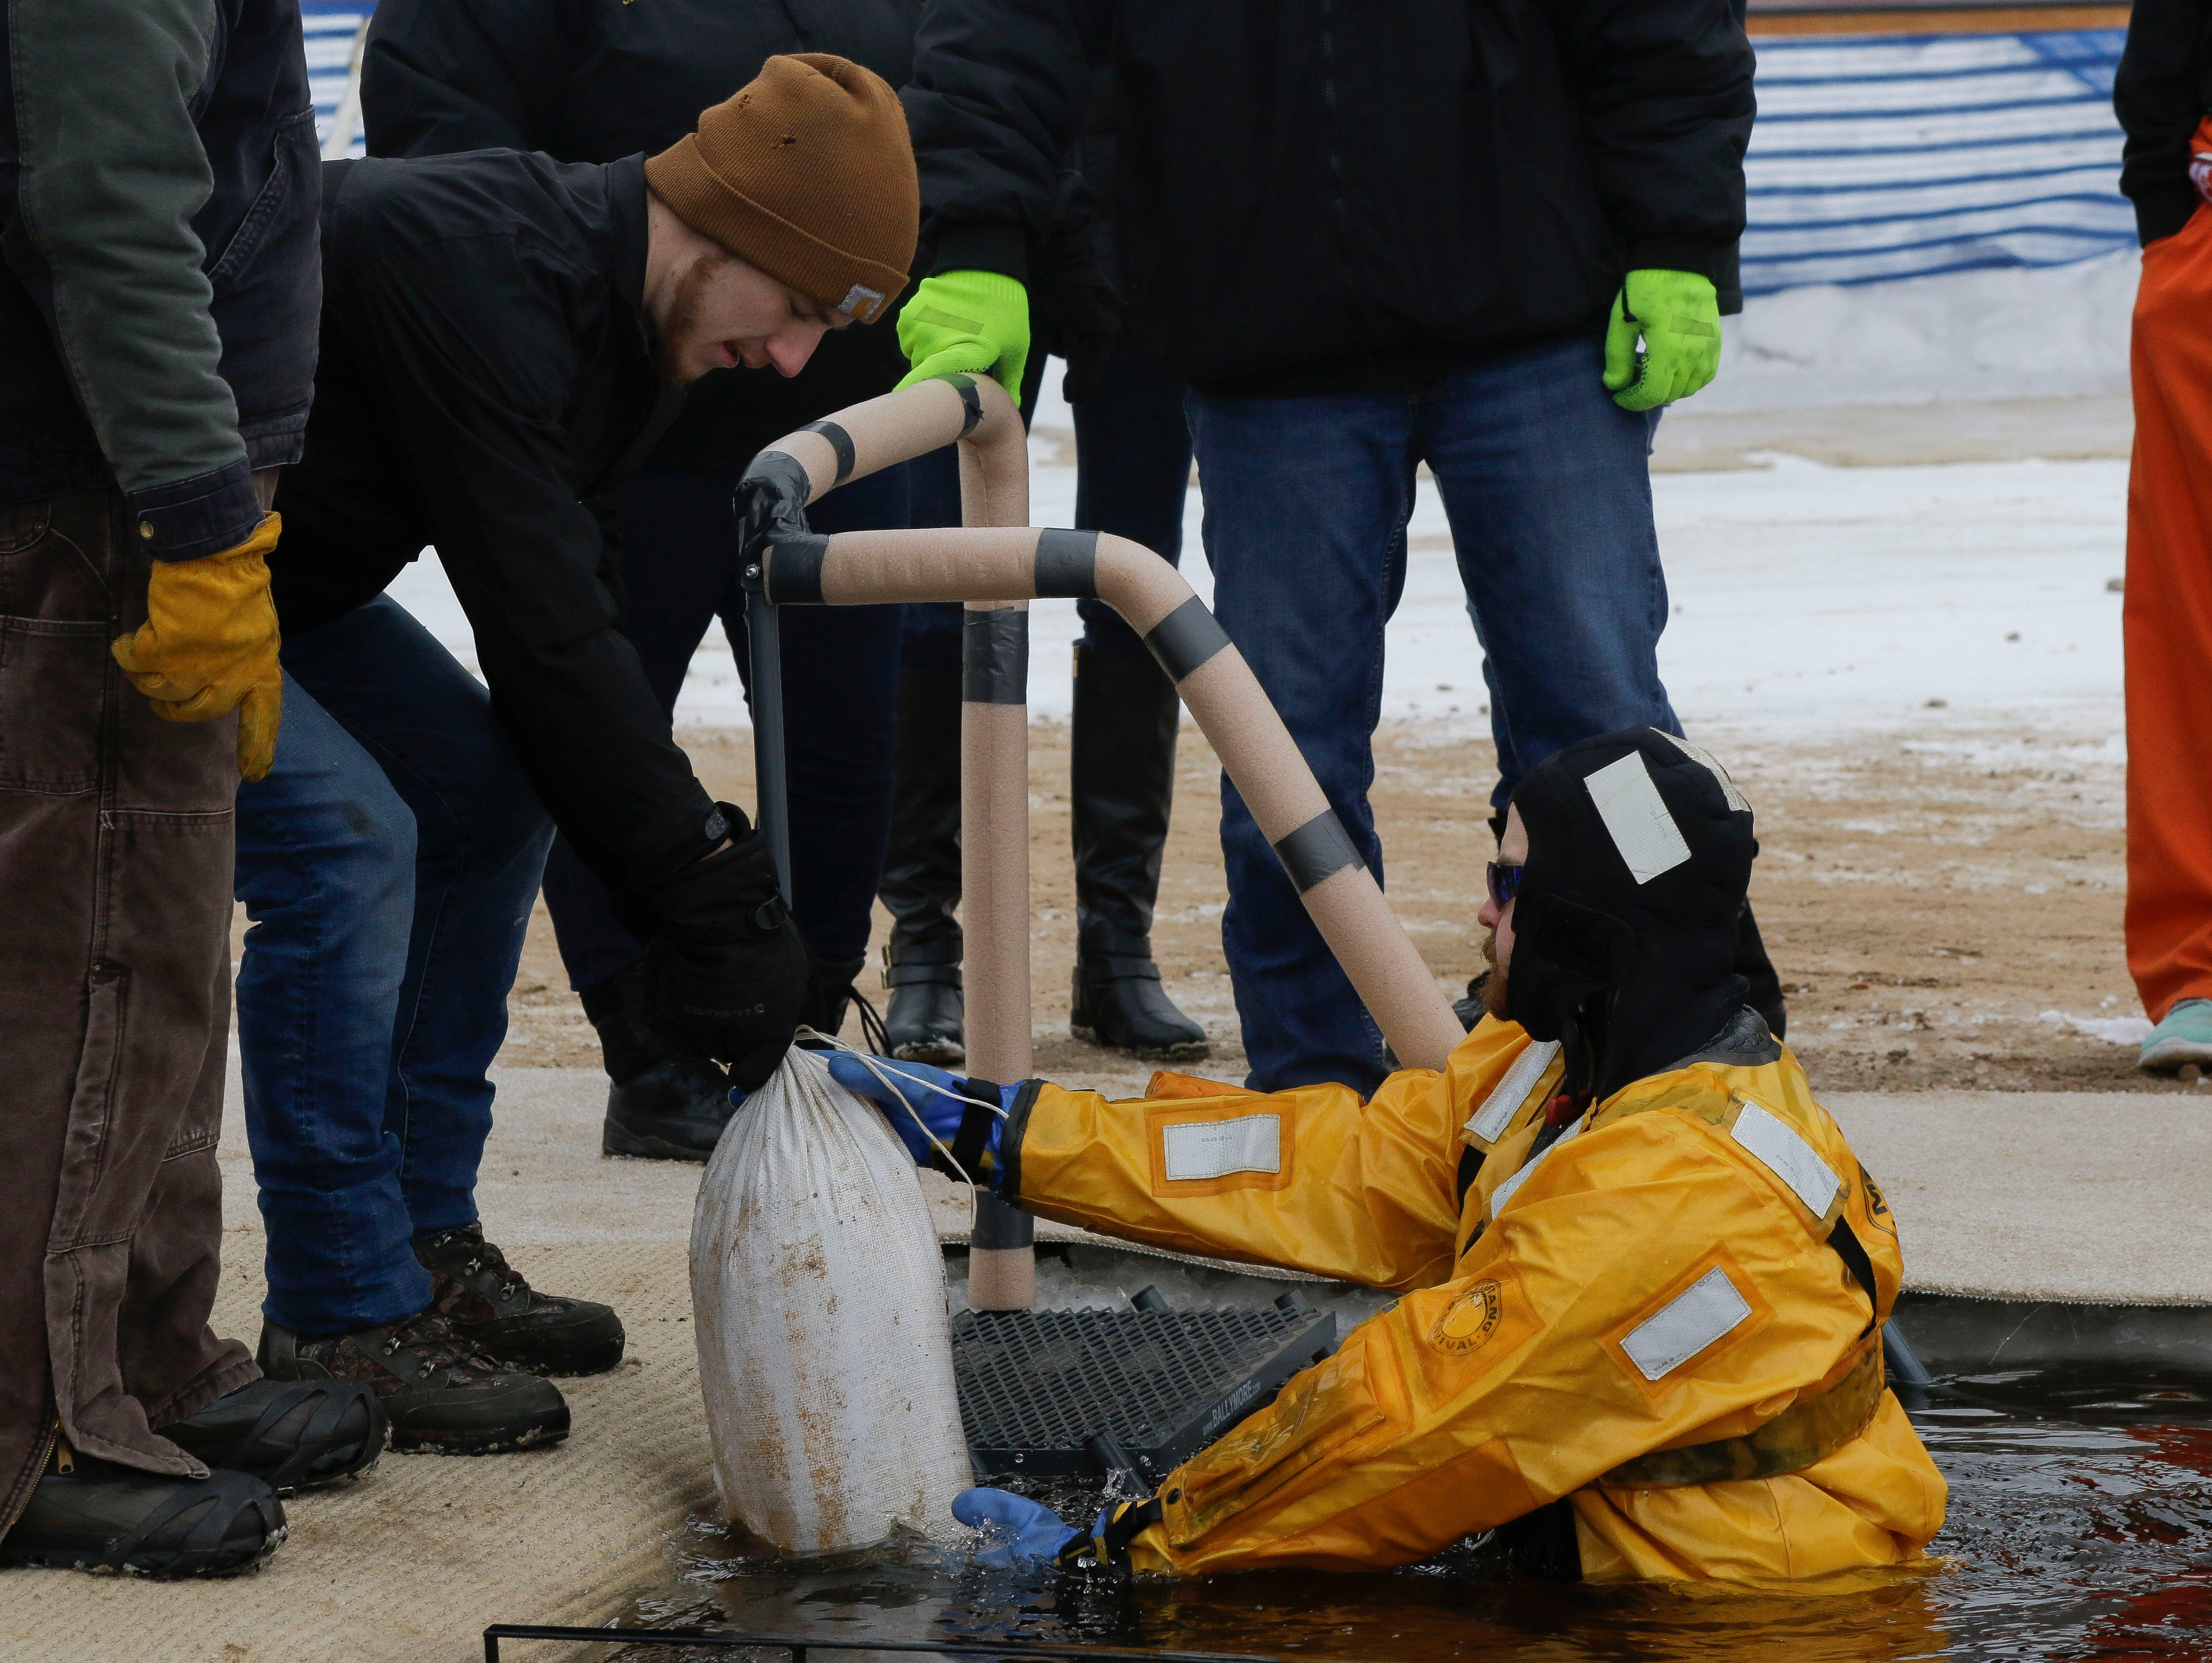 Members of the Wood County Sheriff's Rescue team secure a step ladder in the pool prior to a polar plunge event on Saturday, February 2, 2019, at Anchor Bay Bar and Grill in Biron, Wis. The event was one of many polar plunges across the state held as fundraisers for Special Olympics Wisconsin.Tork Mason/USA TODAY NETWORK-Wisconsin